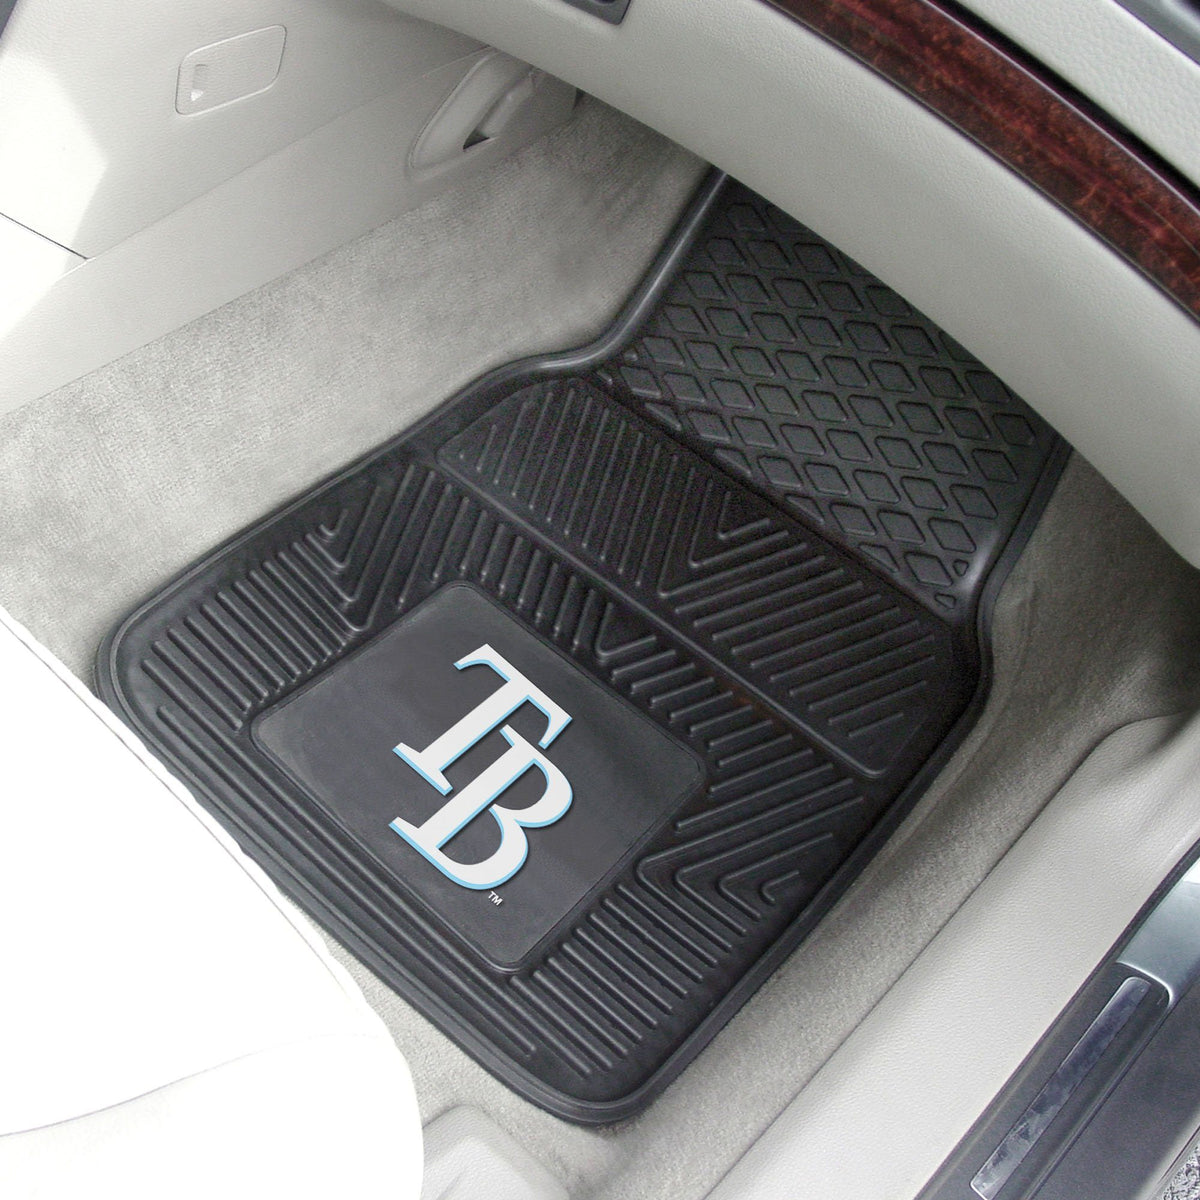 MLB - Vinyl Car Mat, 2-Piece Set MLB Mats, Front Car Mats, 2-pc Vinyl Car Mat Set, MLB, Auto Fan Mats Tampa Bay Rays